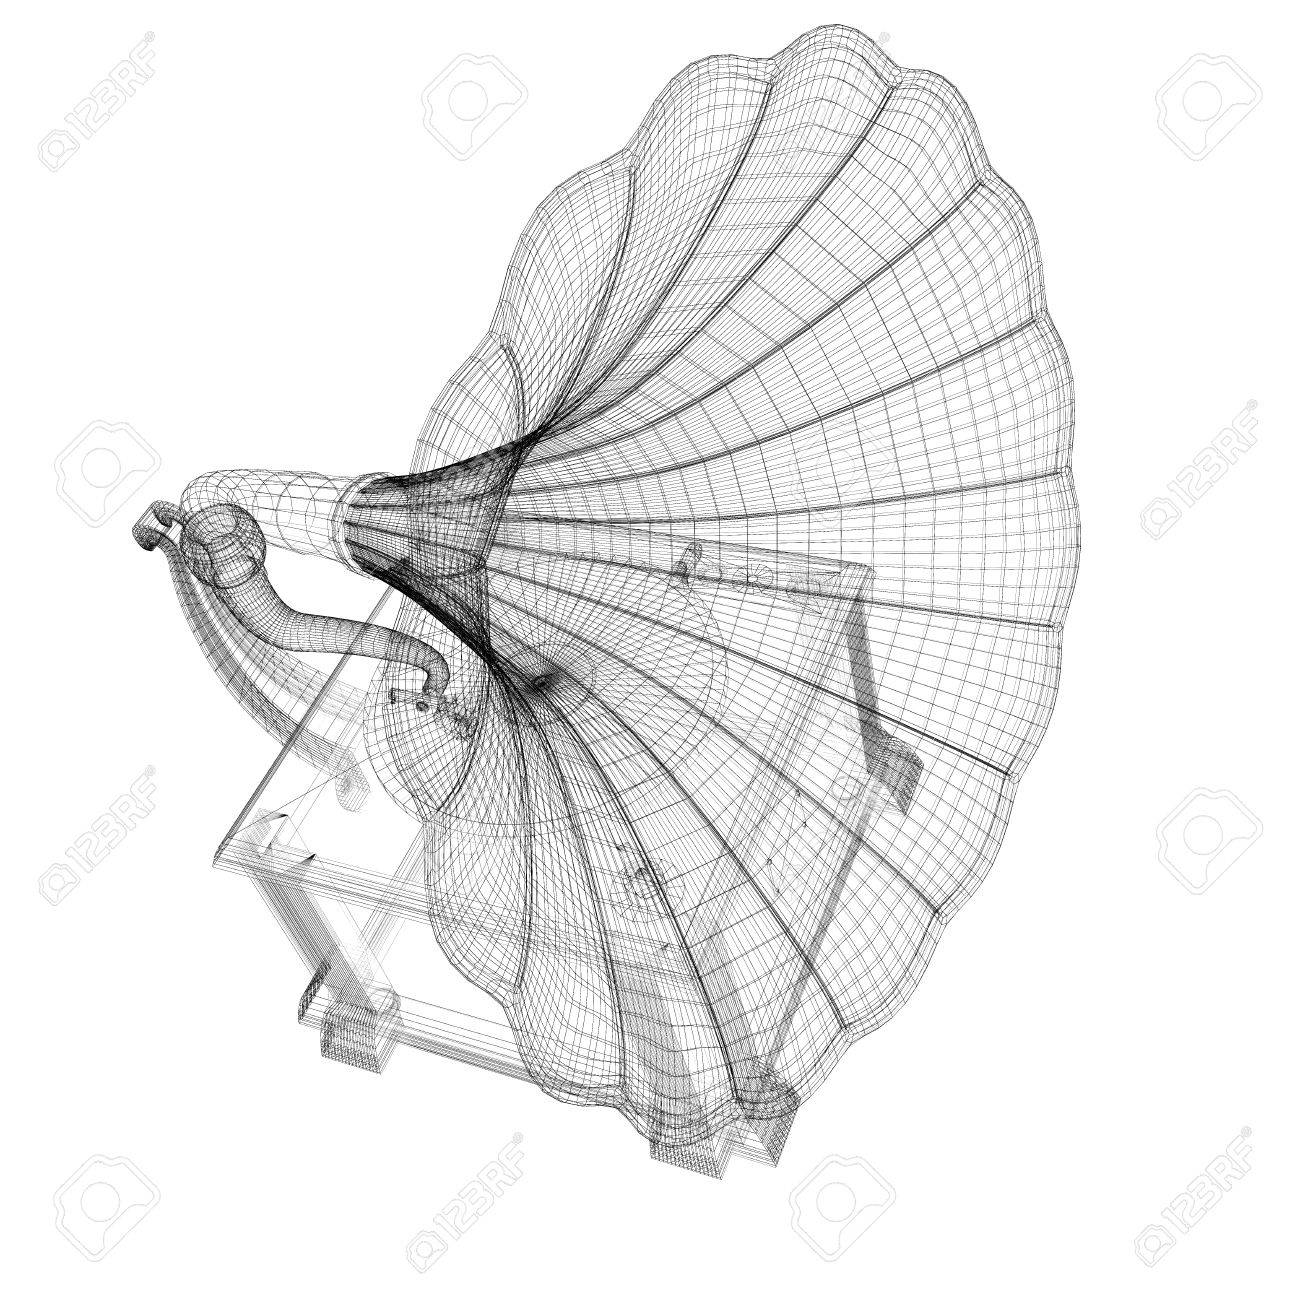 Gramophone 3D model body structure, wire model